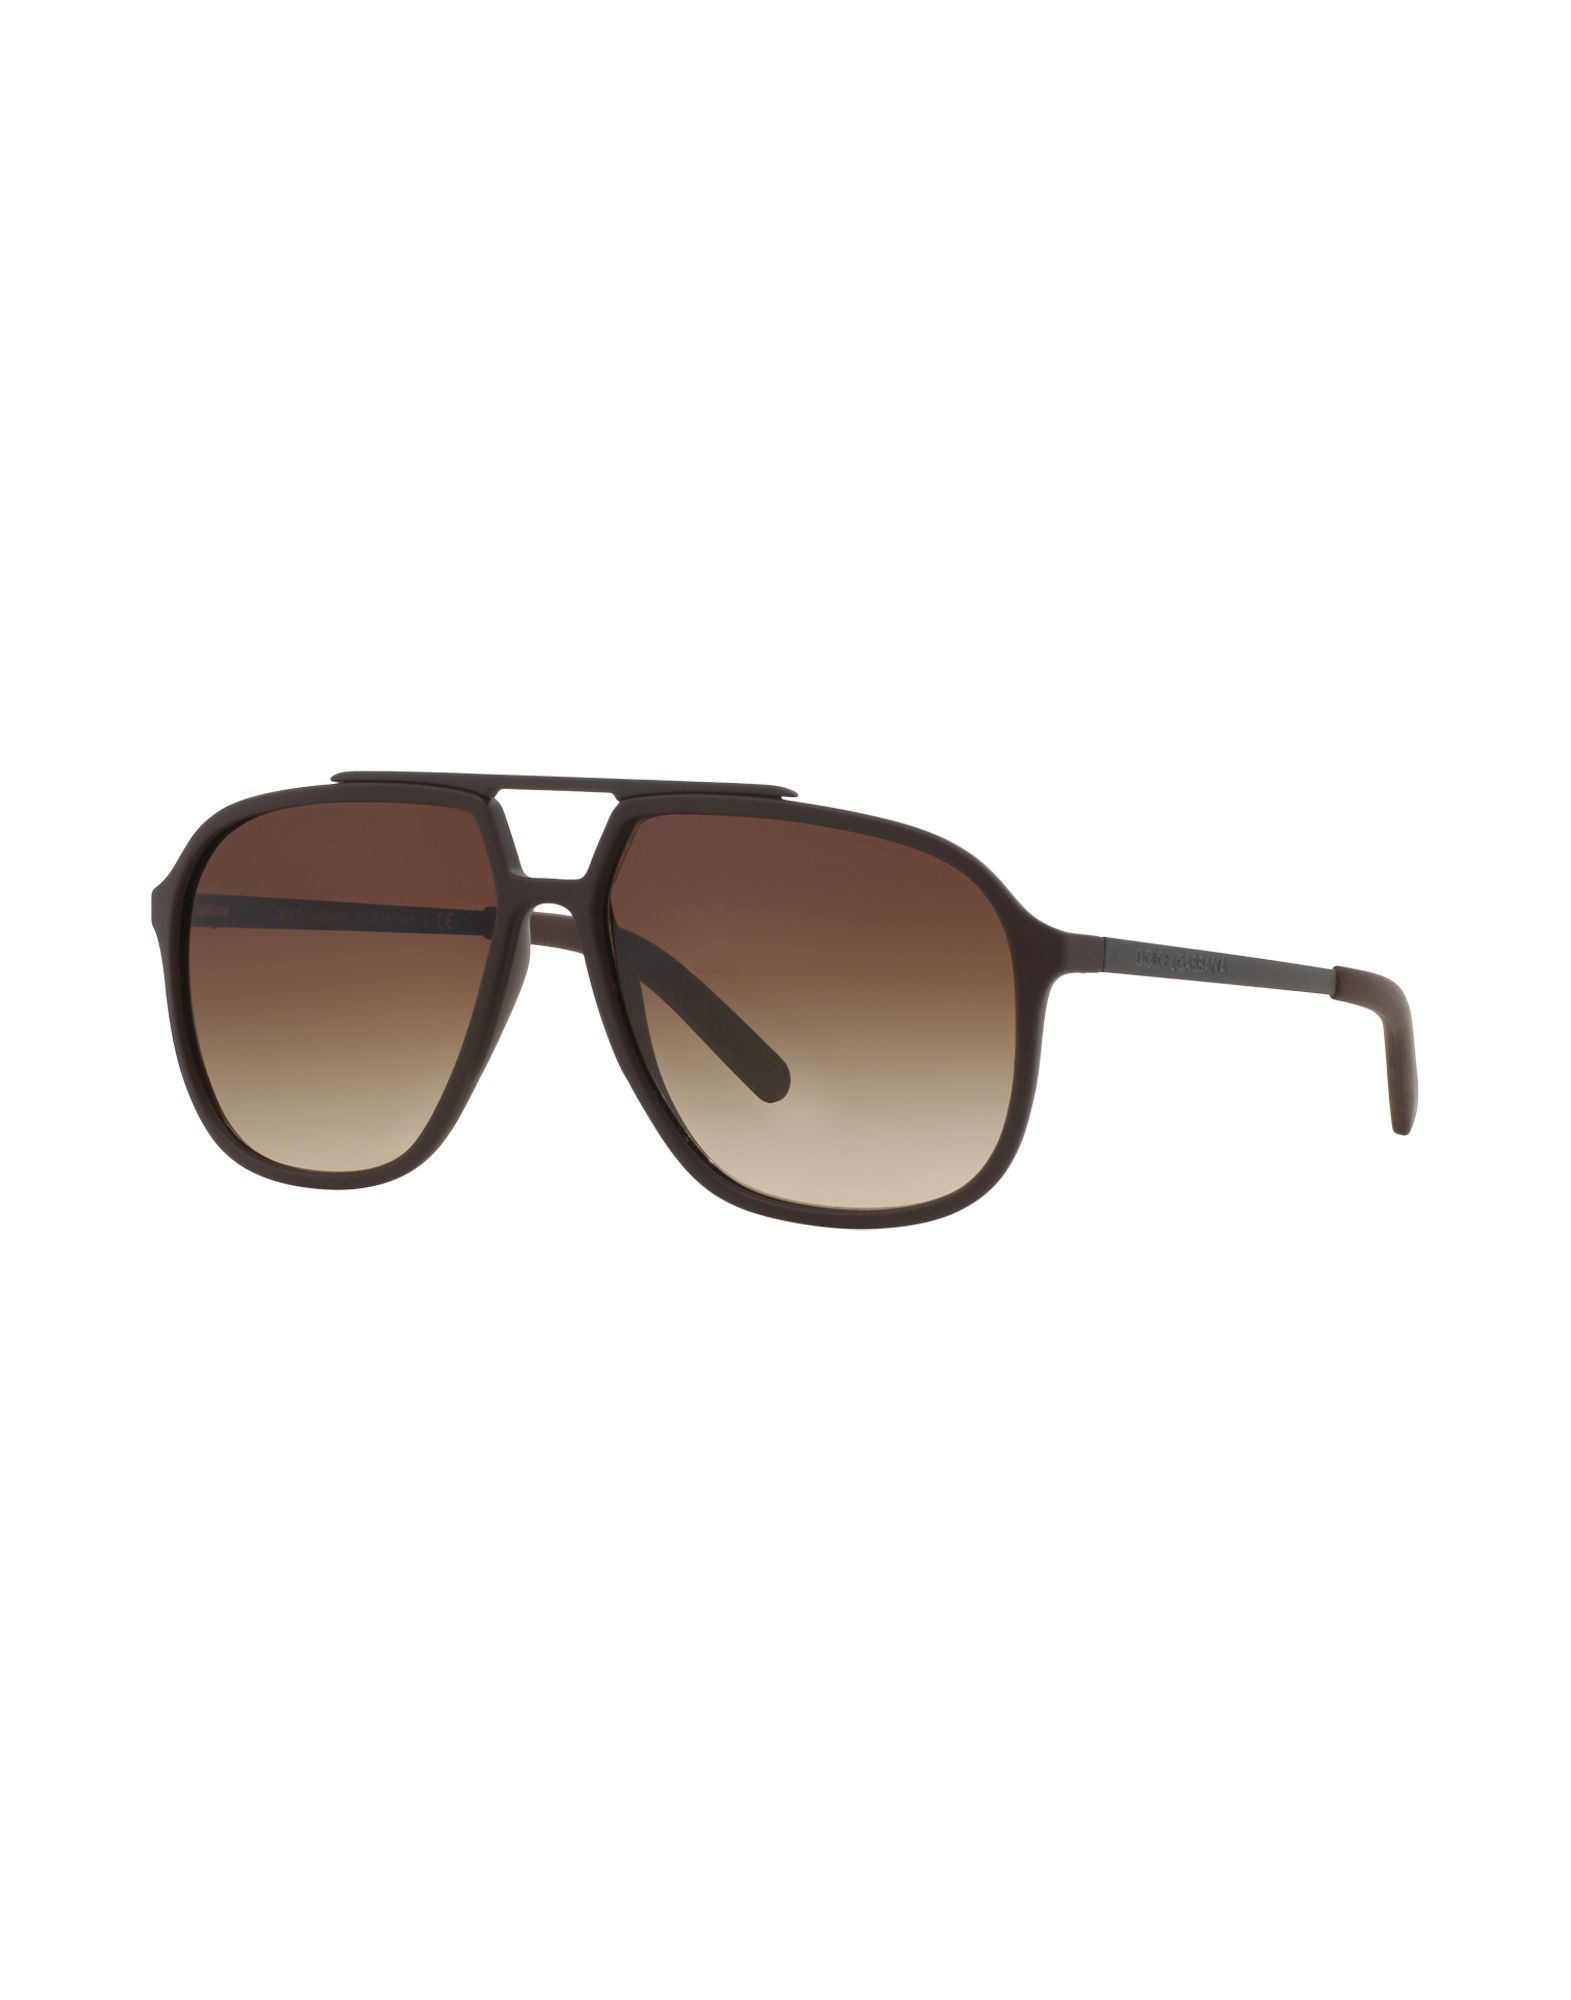 2894efb92997 Dolce   Gabbana Aviator Sunglasses Brown